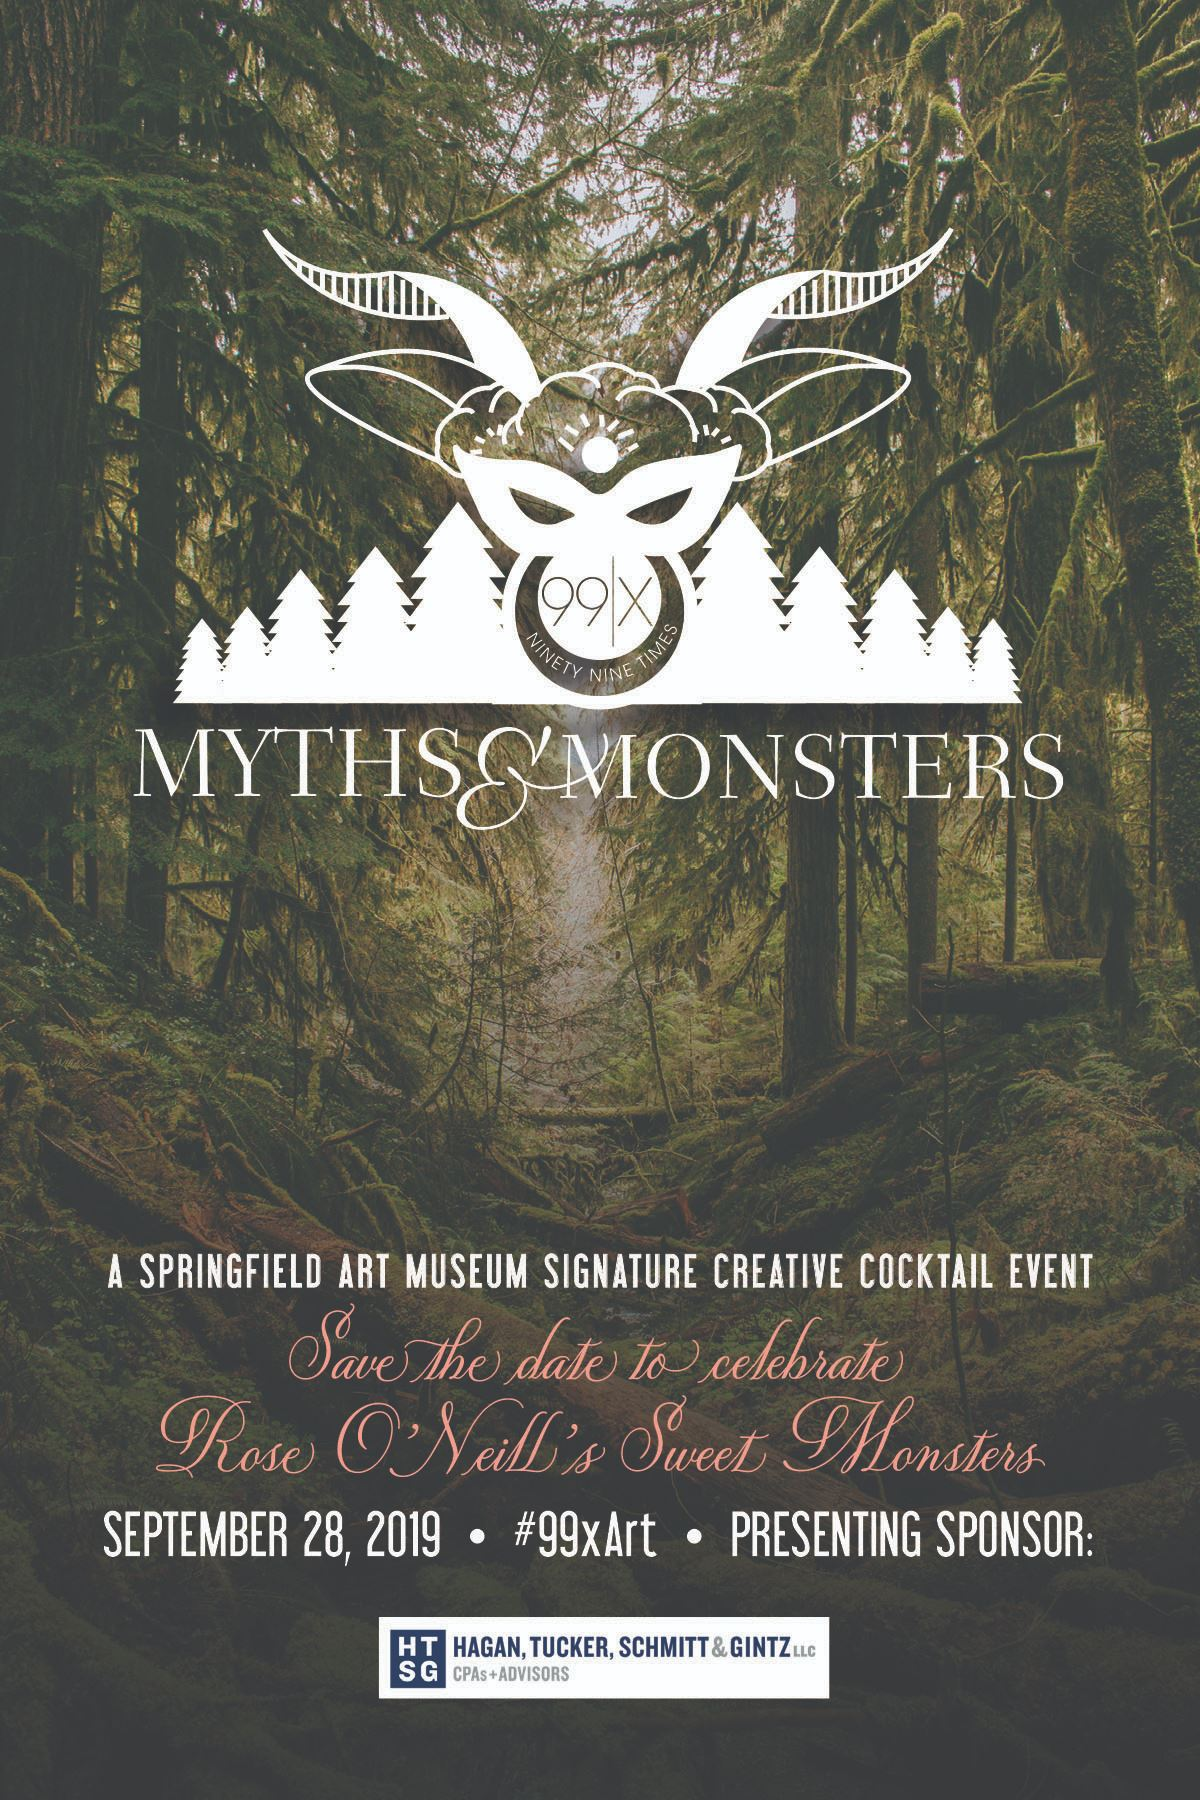 99x Myths and Monsters Save The Date featuring logo against a woodland backdrop